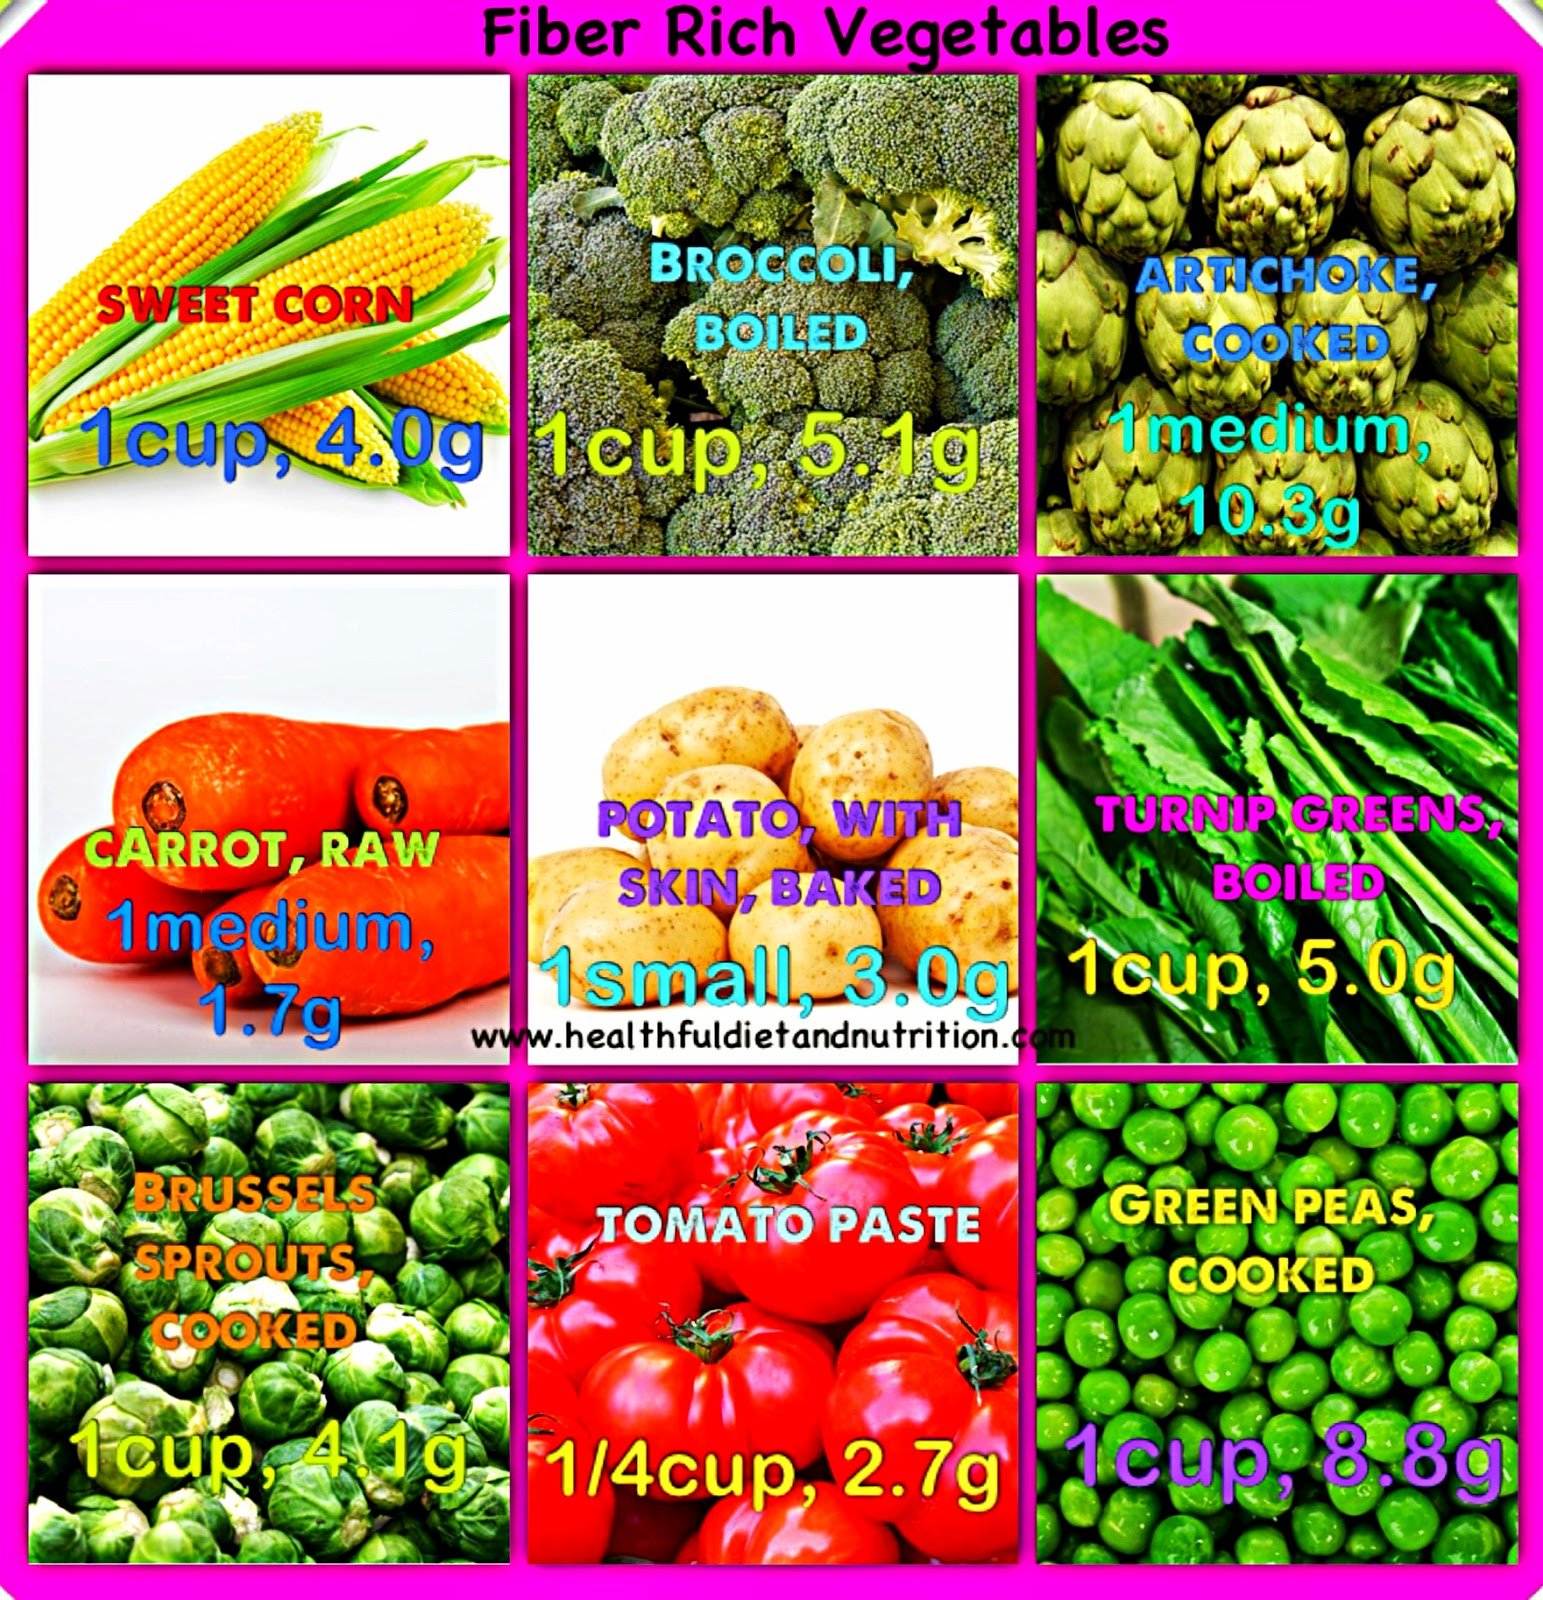 Fiber Rich Vegetables